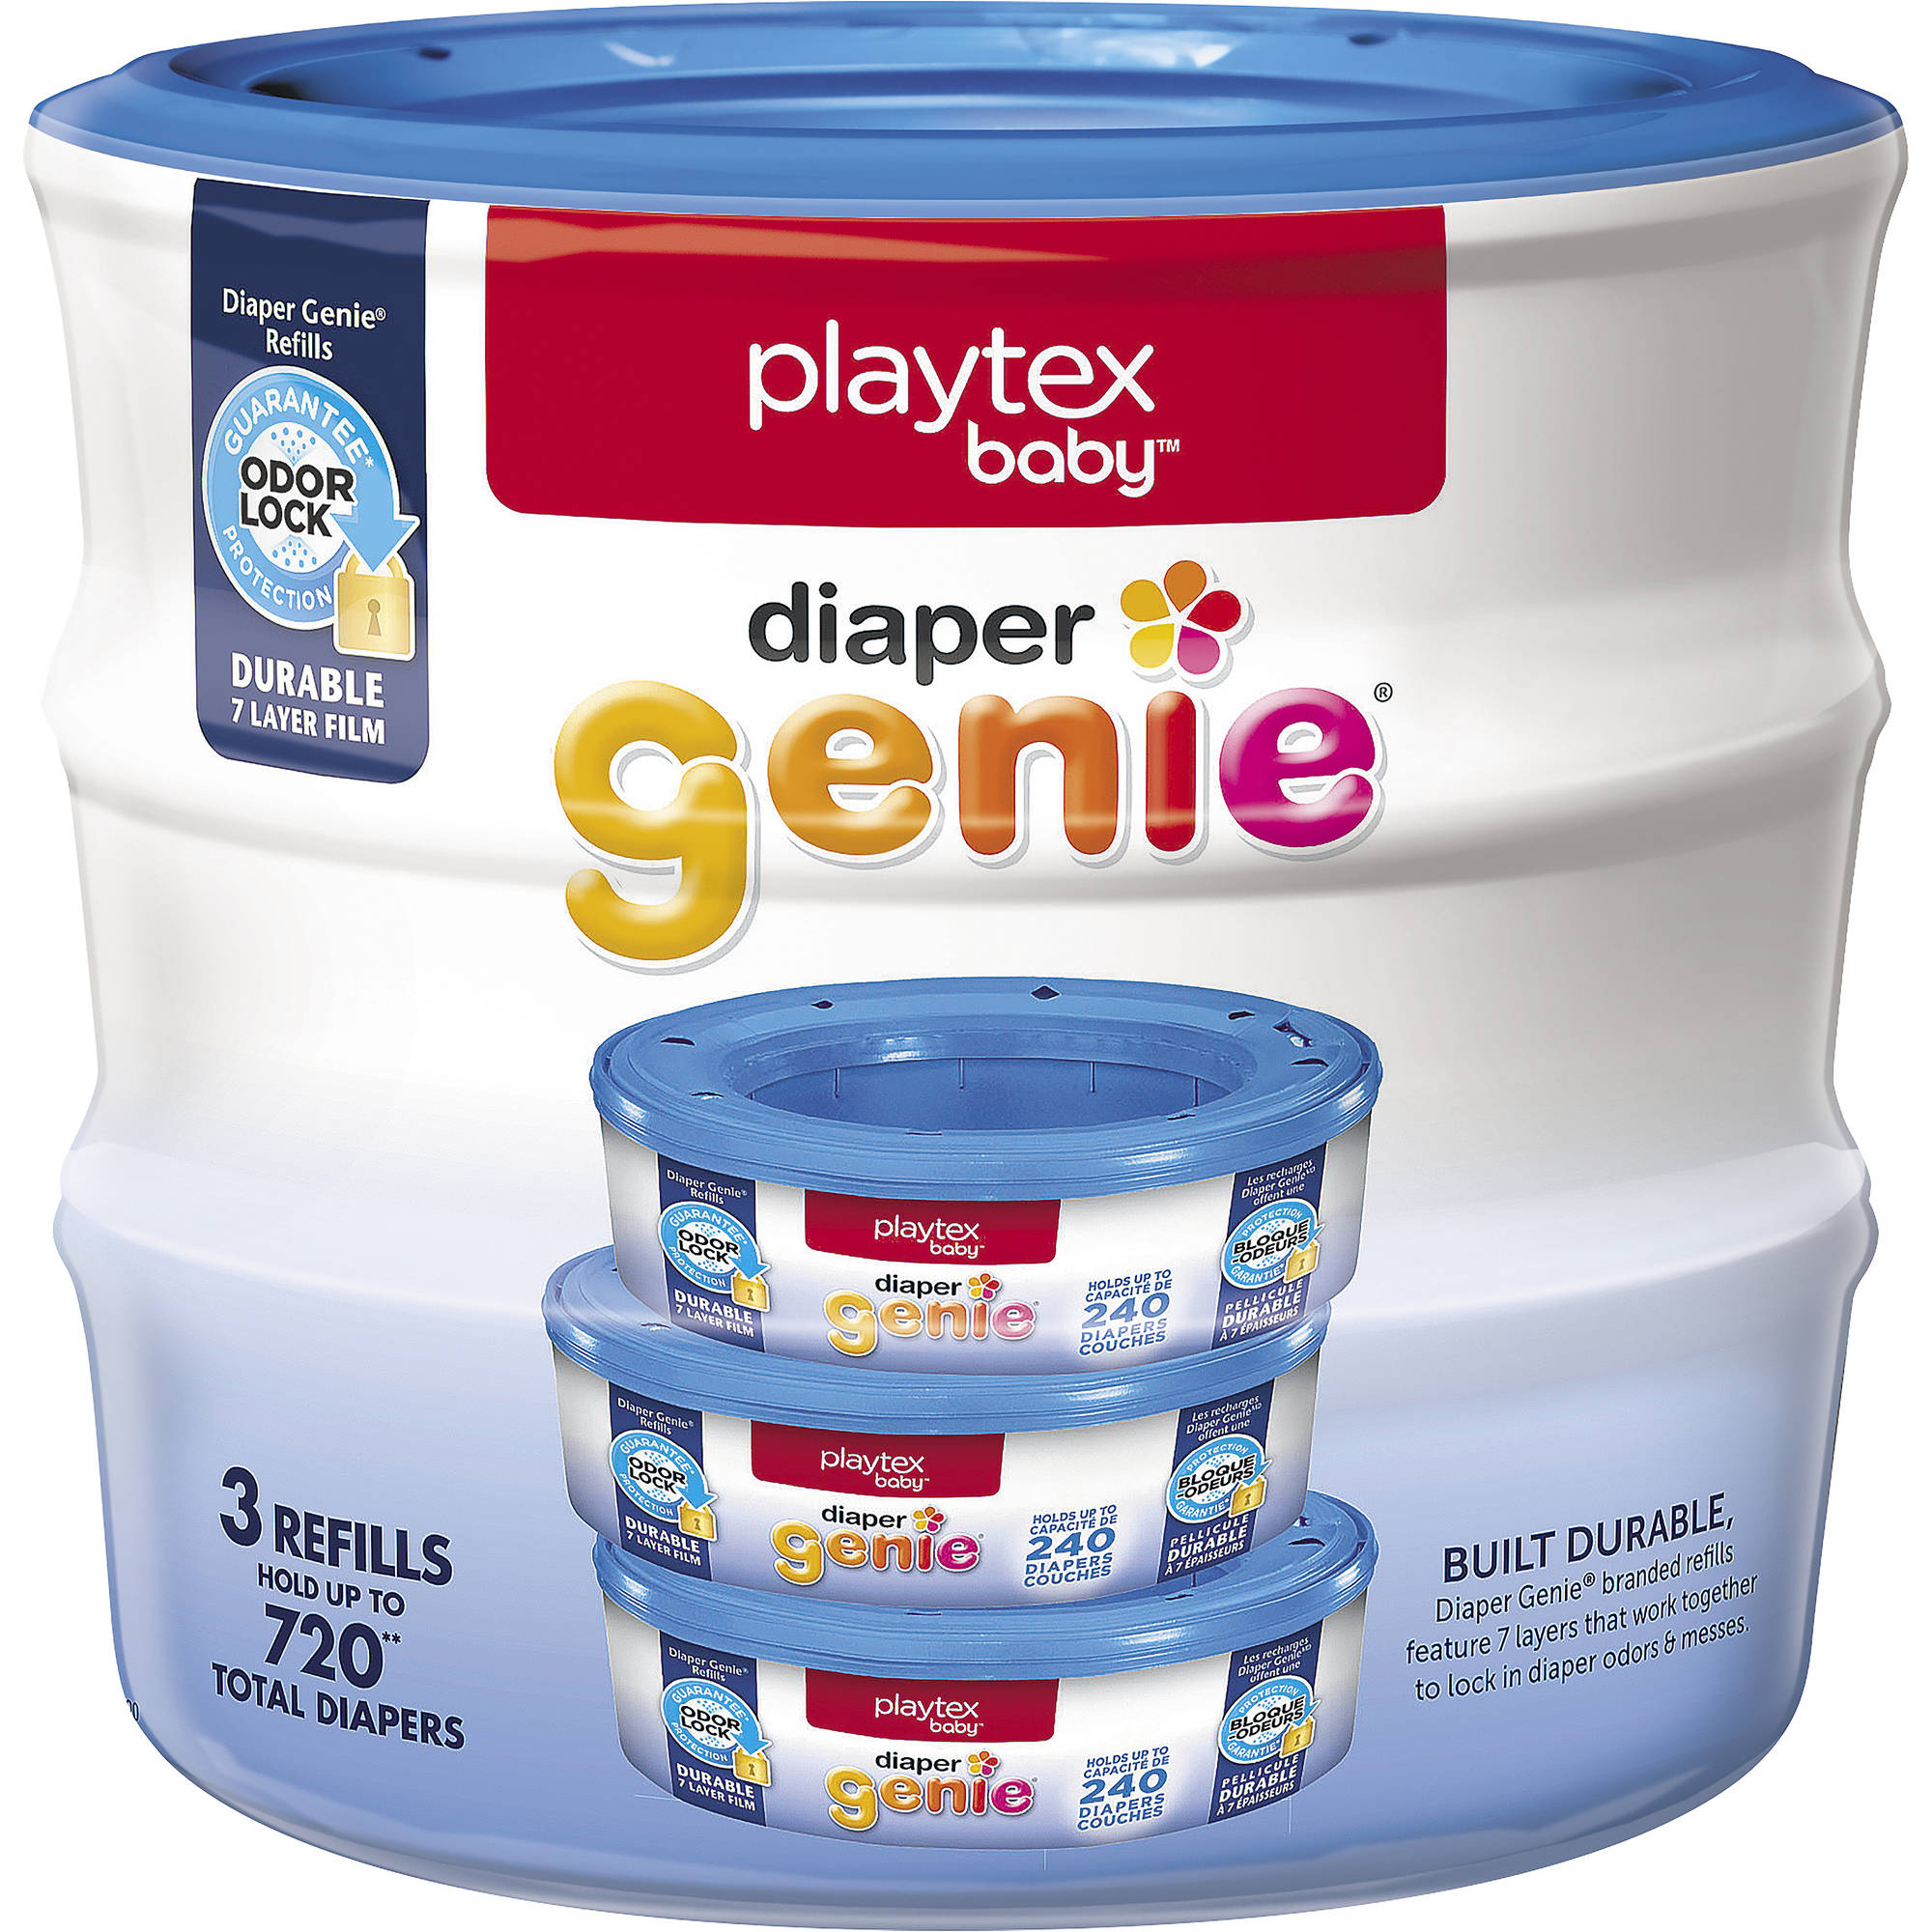 Playtex Diaper Genie Refills, 3-Pack